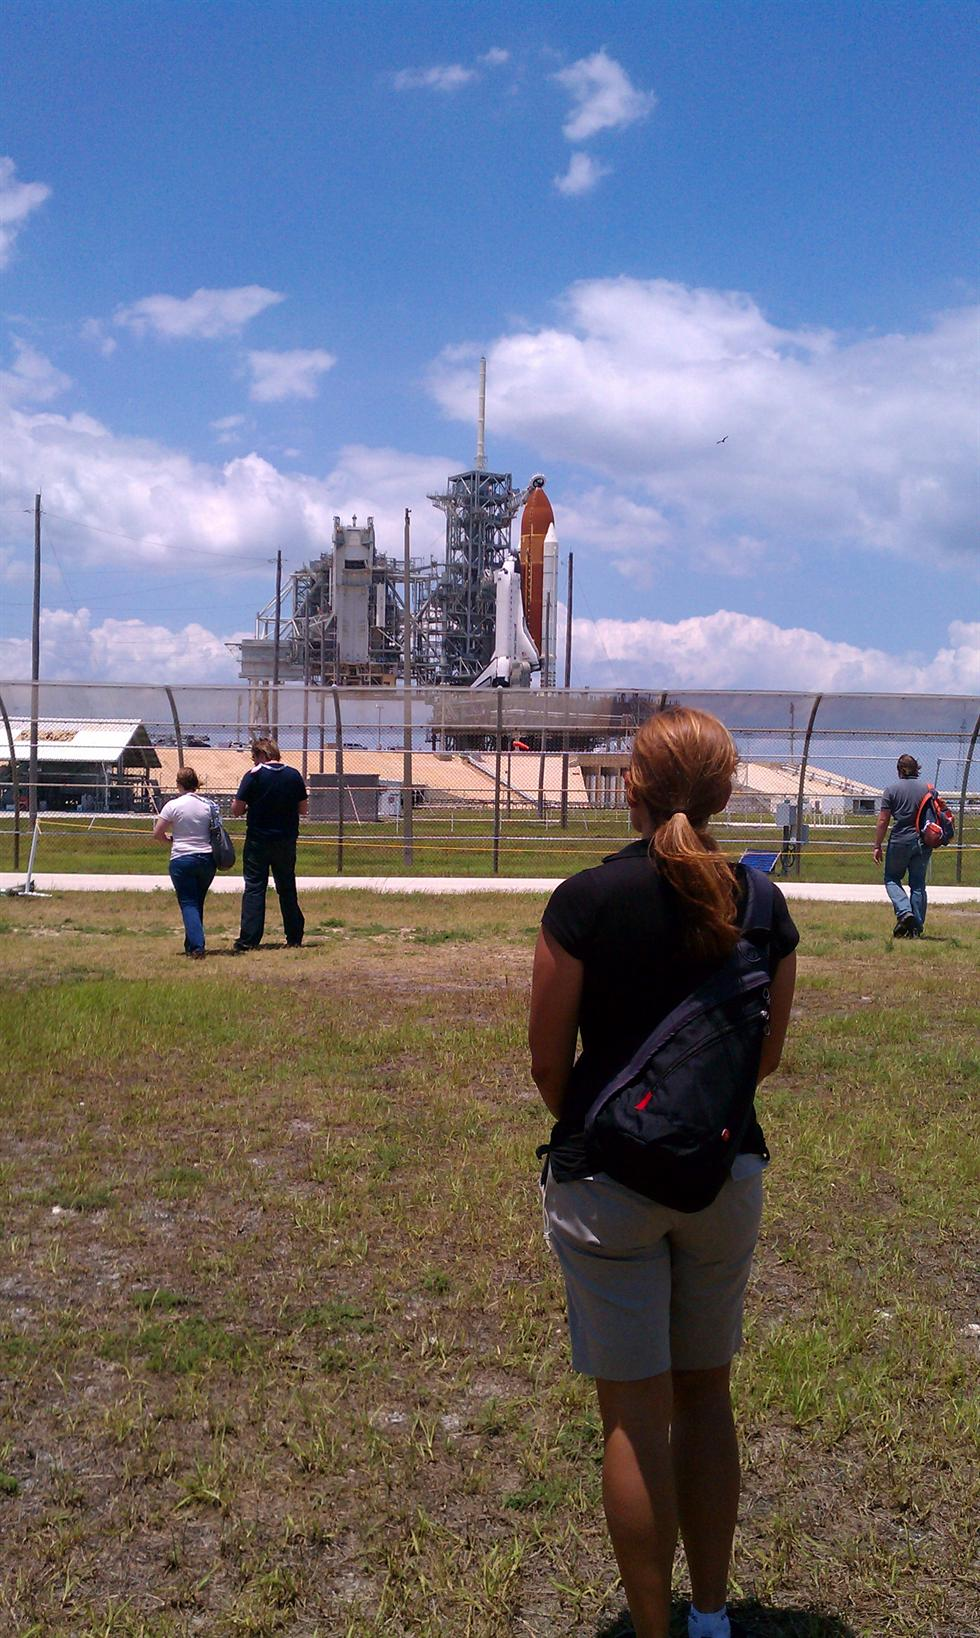 Miralles taking in the last space shuttle launch at Kennedy Space Center in 2011. Image courtesy of Miralles.